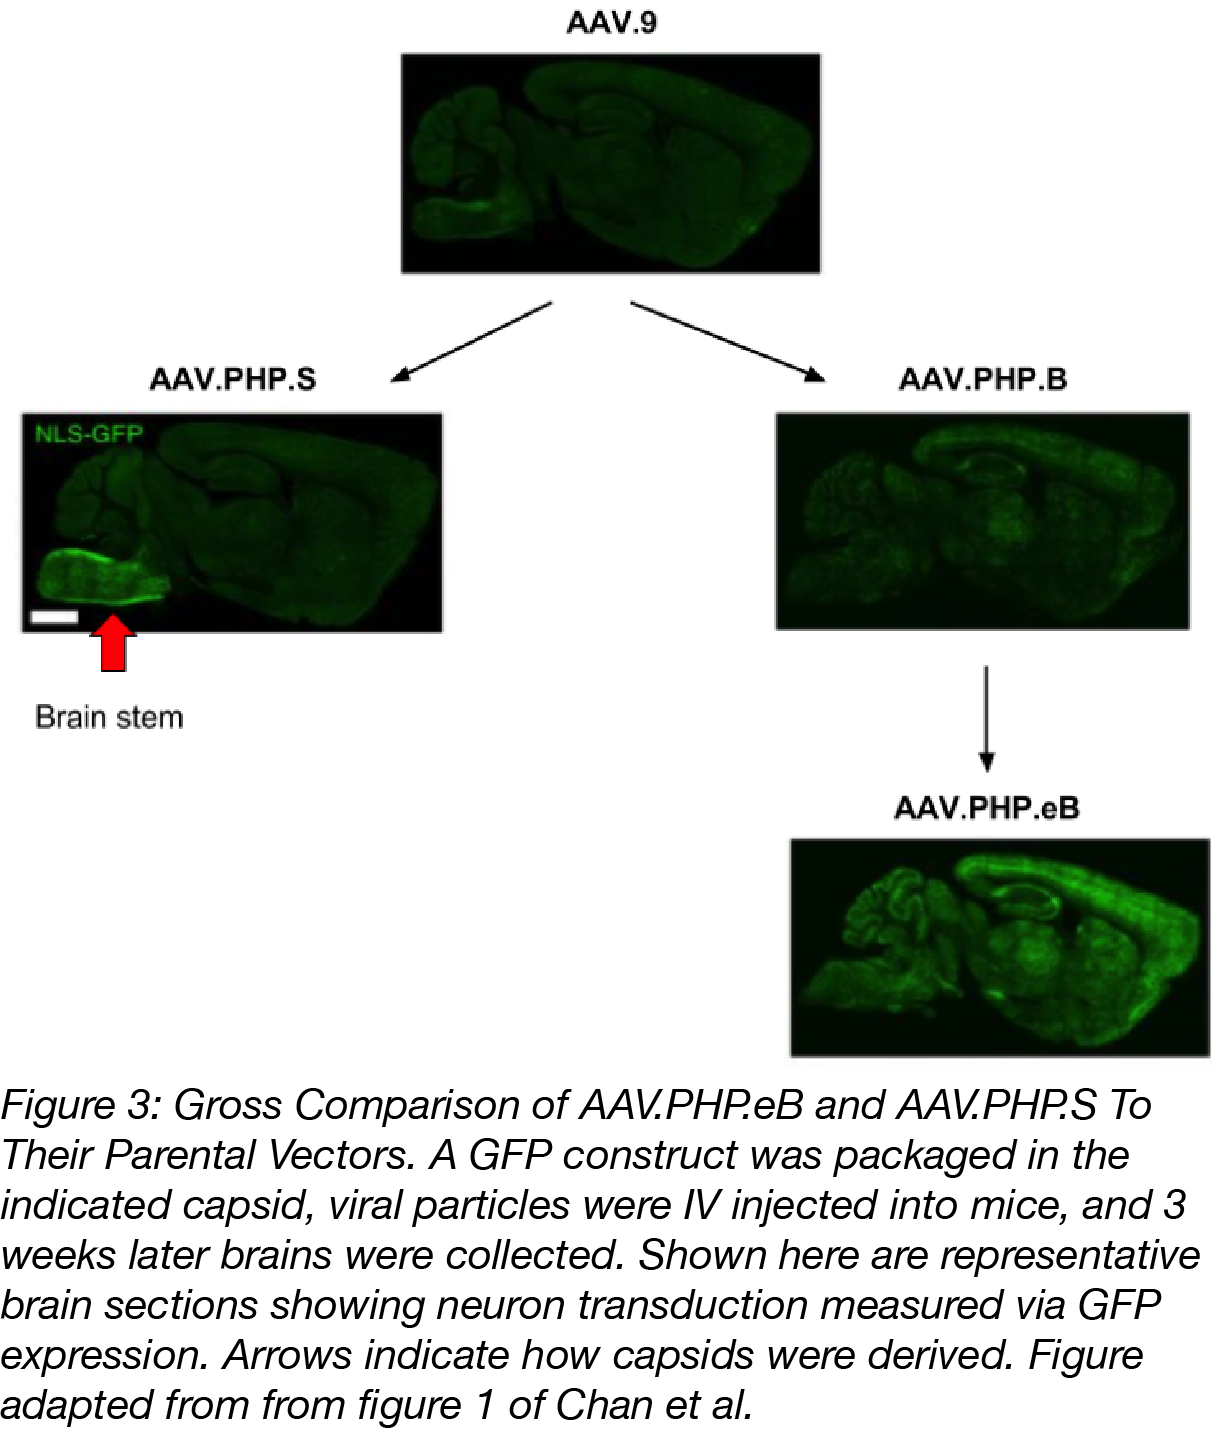 AAV.PHP.eB and AAV.PHP.S GFP delivery to the mouse brain